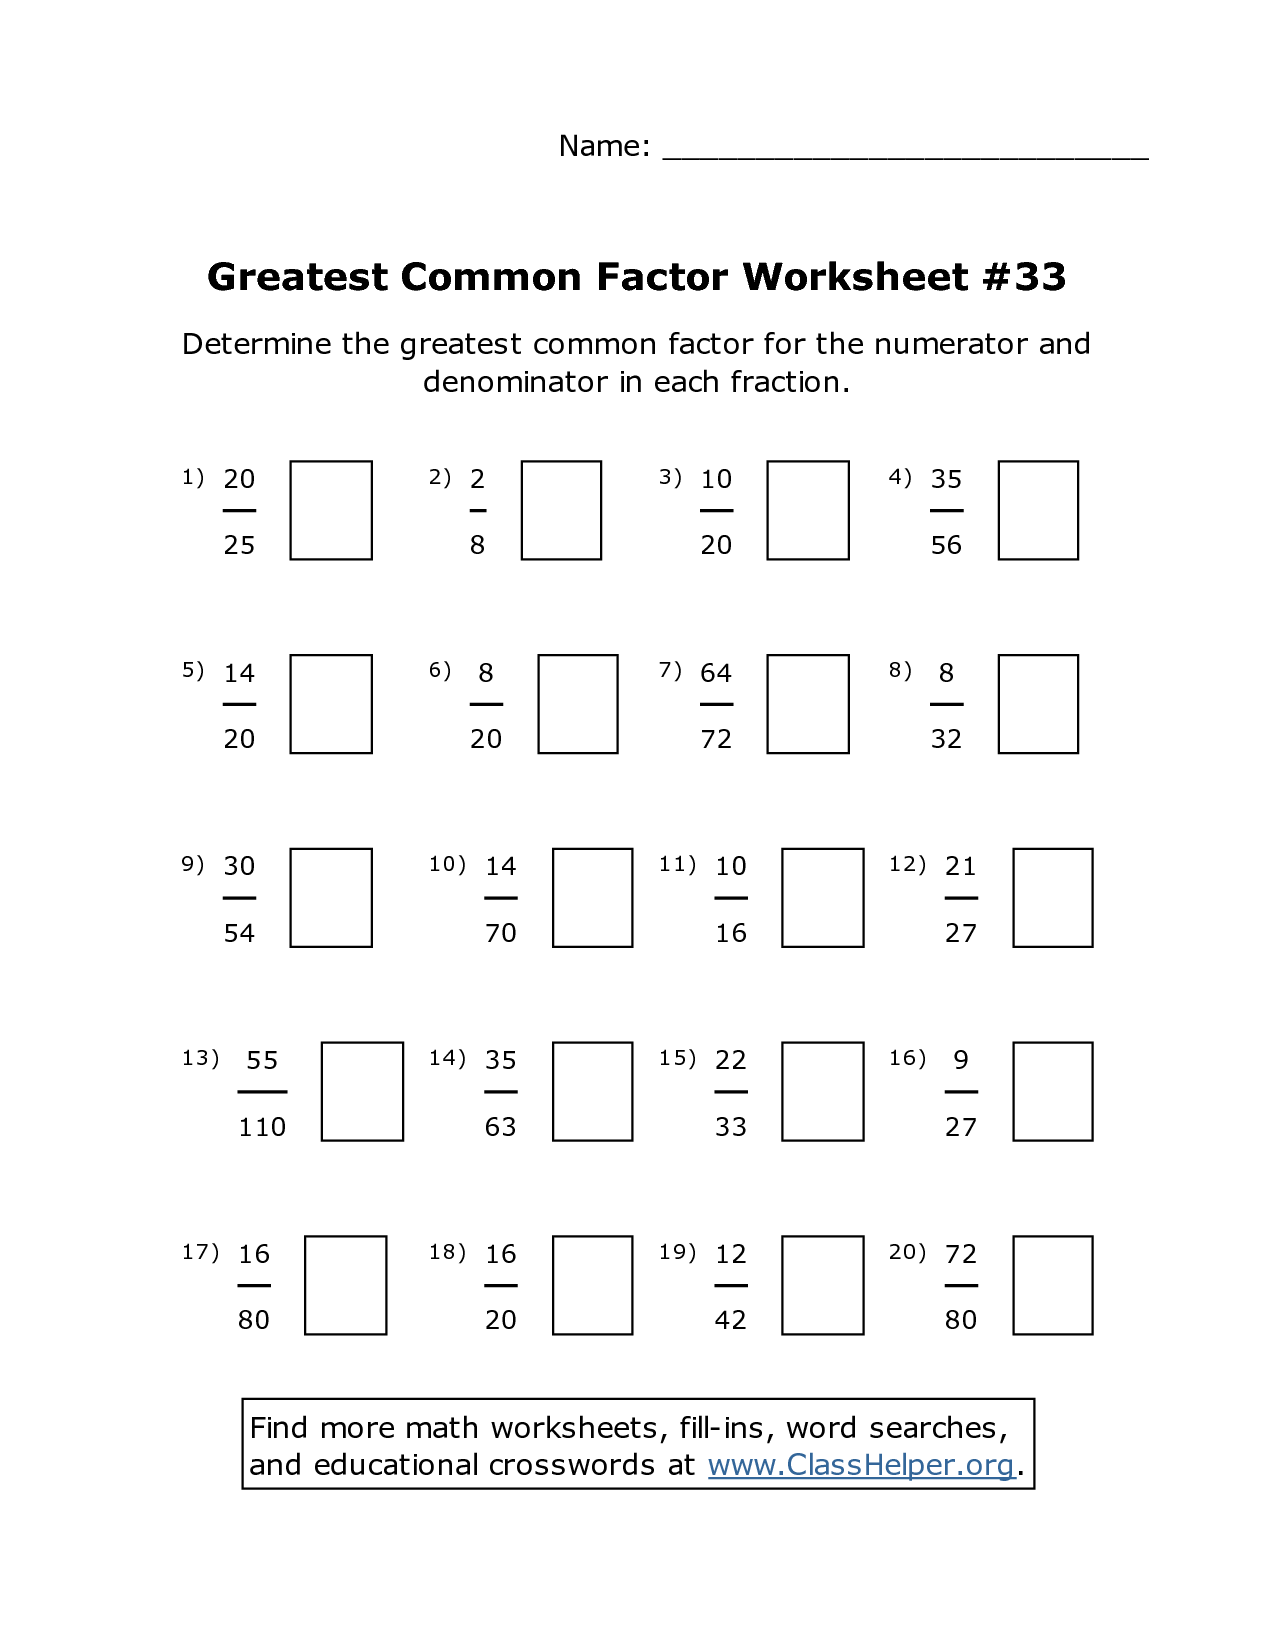 13 Best Images Of Greatest Common Factor Worksheet Answers